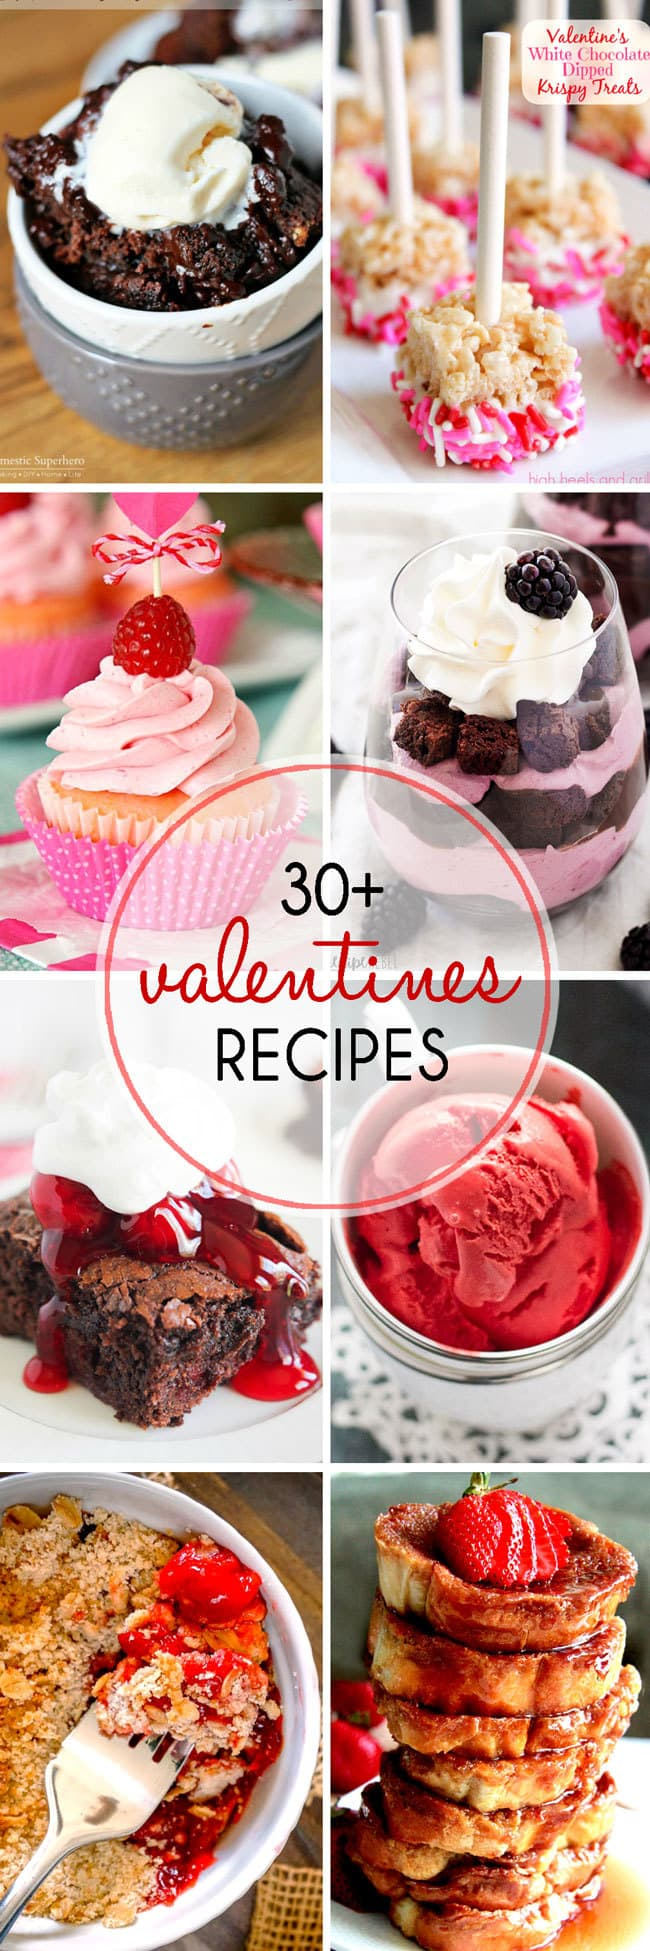 30+ Valentines Day Treats for you to make for your loved one! There are tons of delicious Valentines desserts to choose from in this delectable roundup of treats!